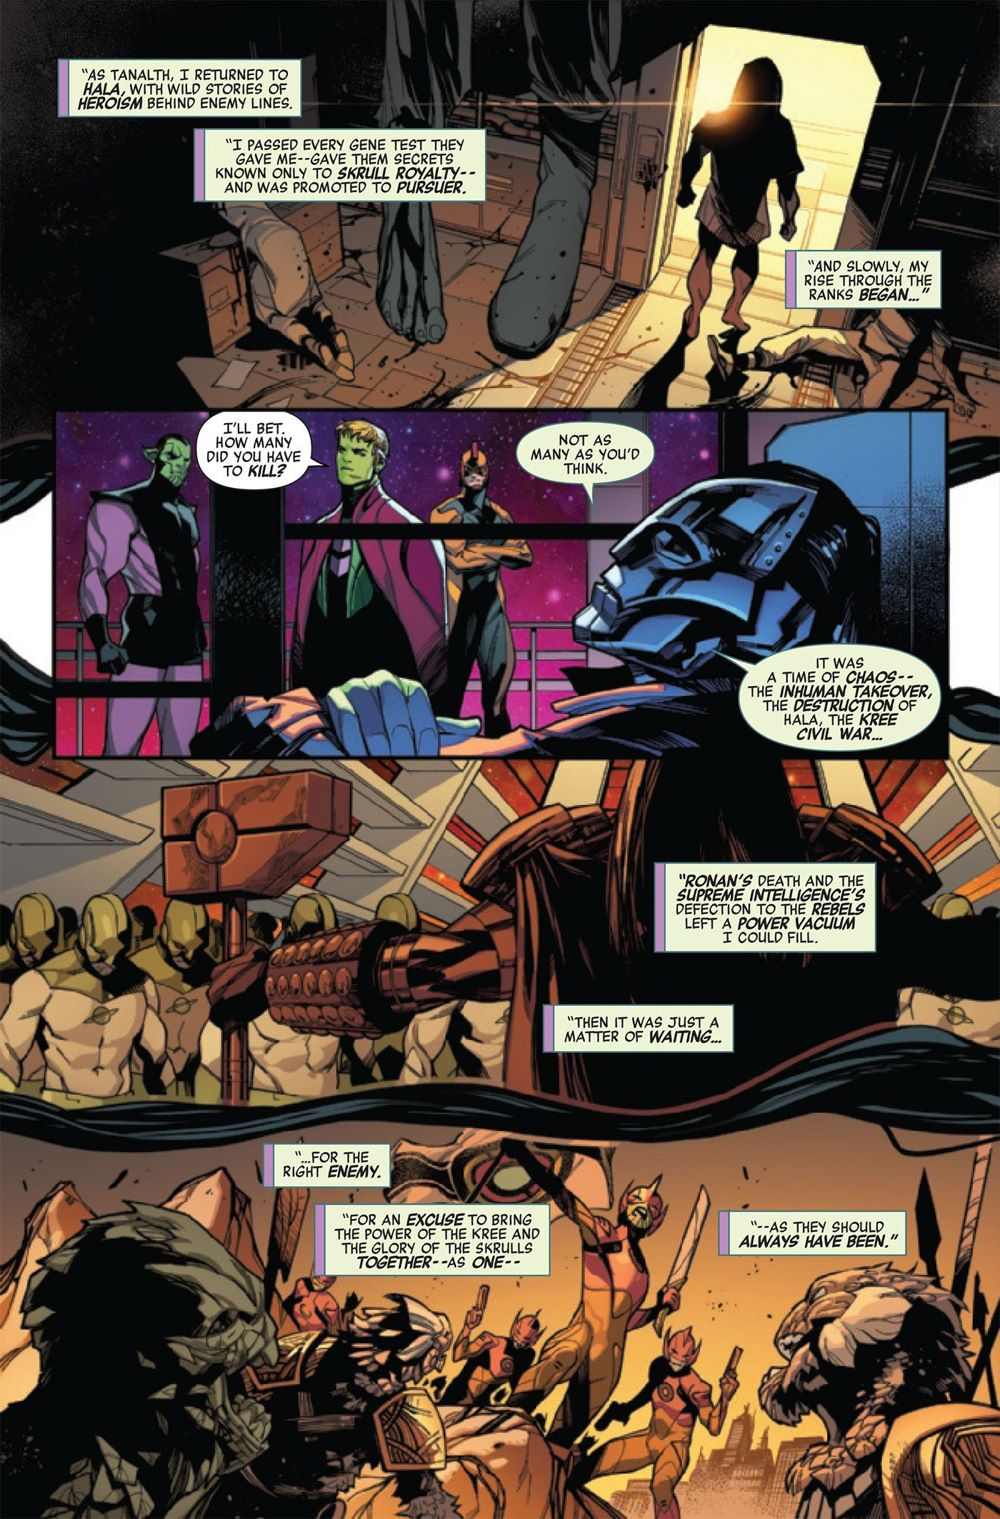 EMPYREAFTERAVEN2020001-Preview-5-1 ComicList Previews: EMPYRE AFTERMATH AVENGERS #1